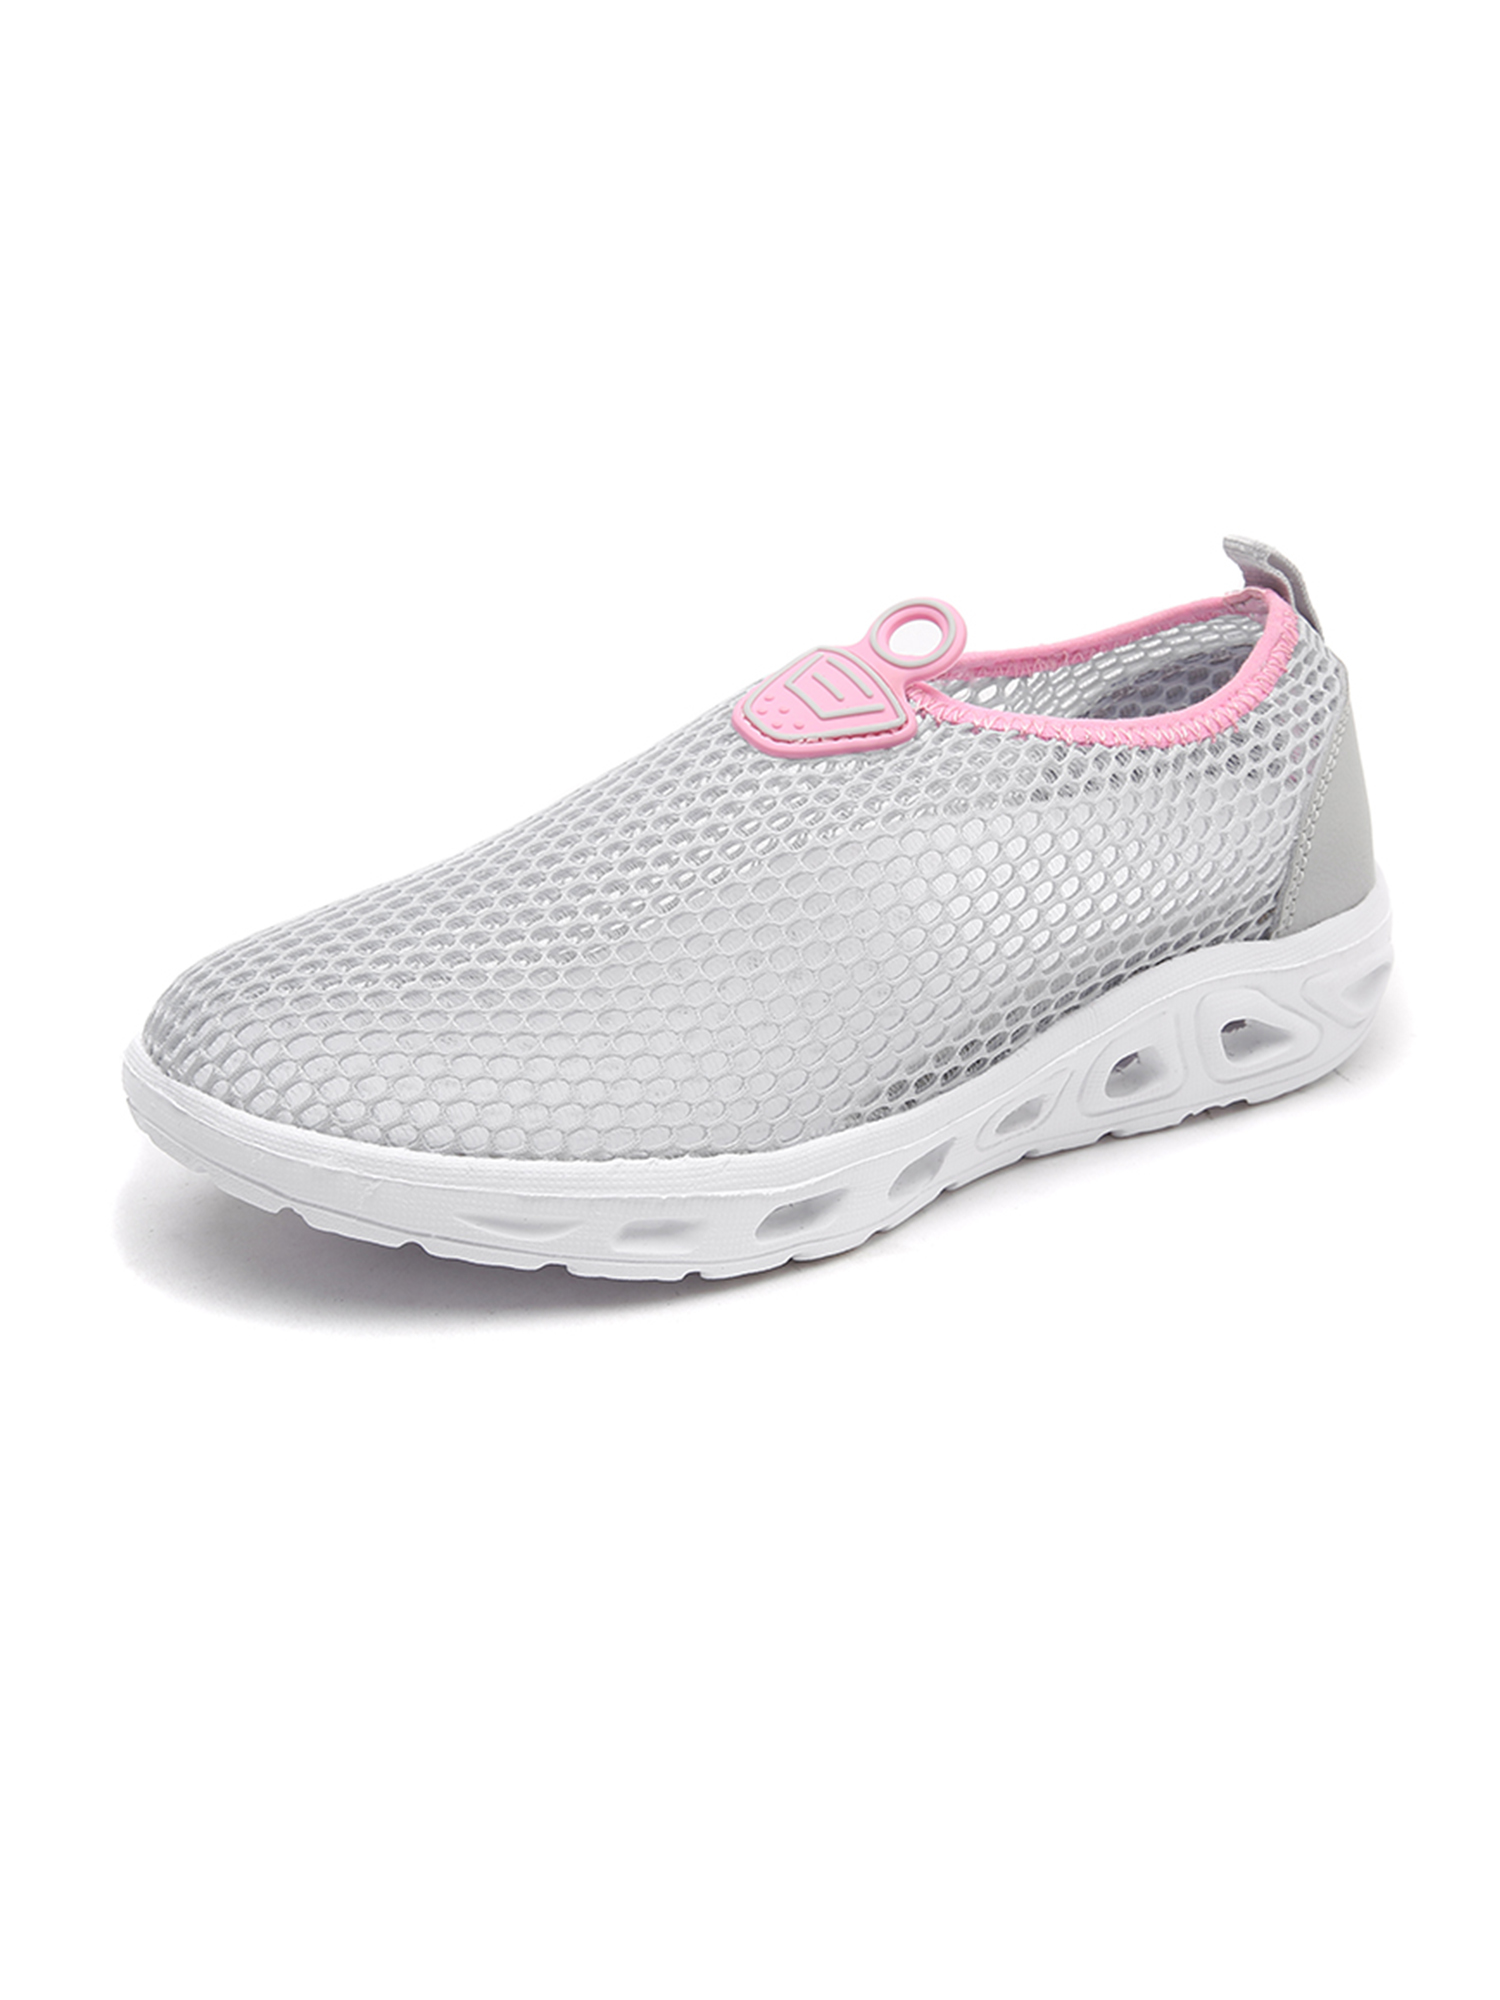 water and oil resistant shoes walmart